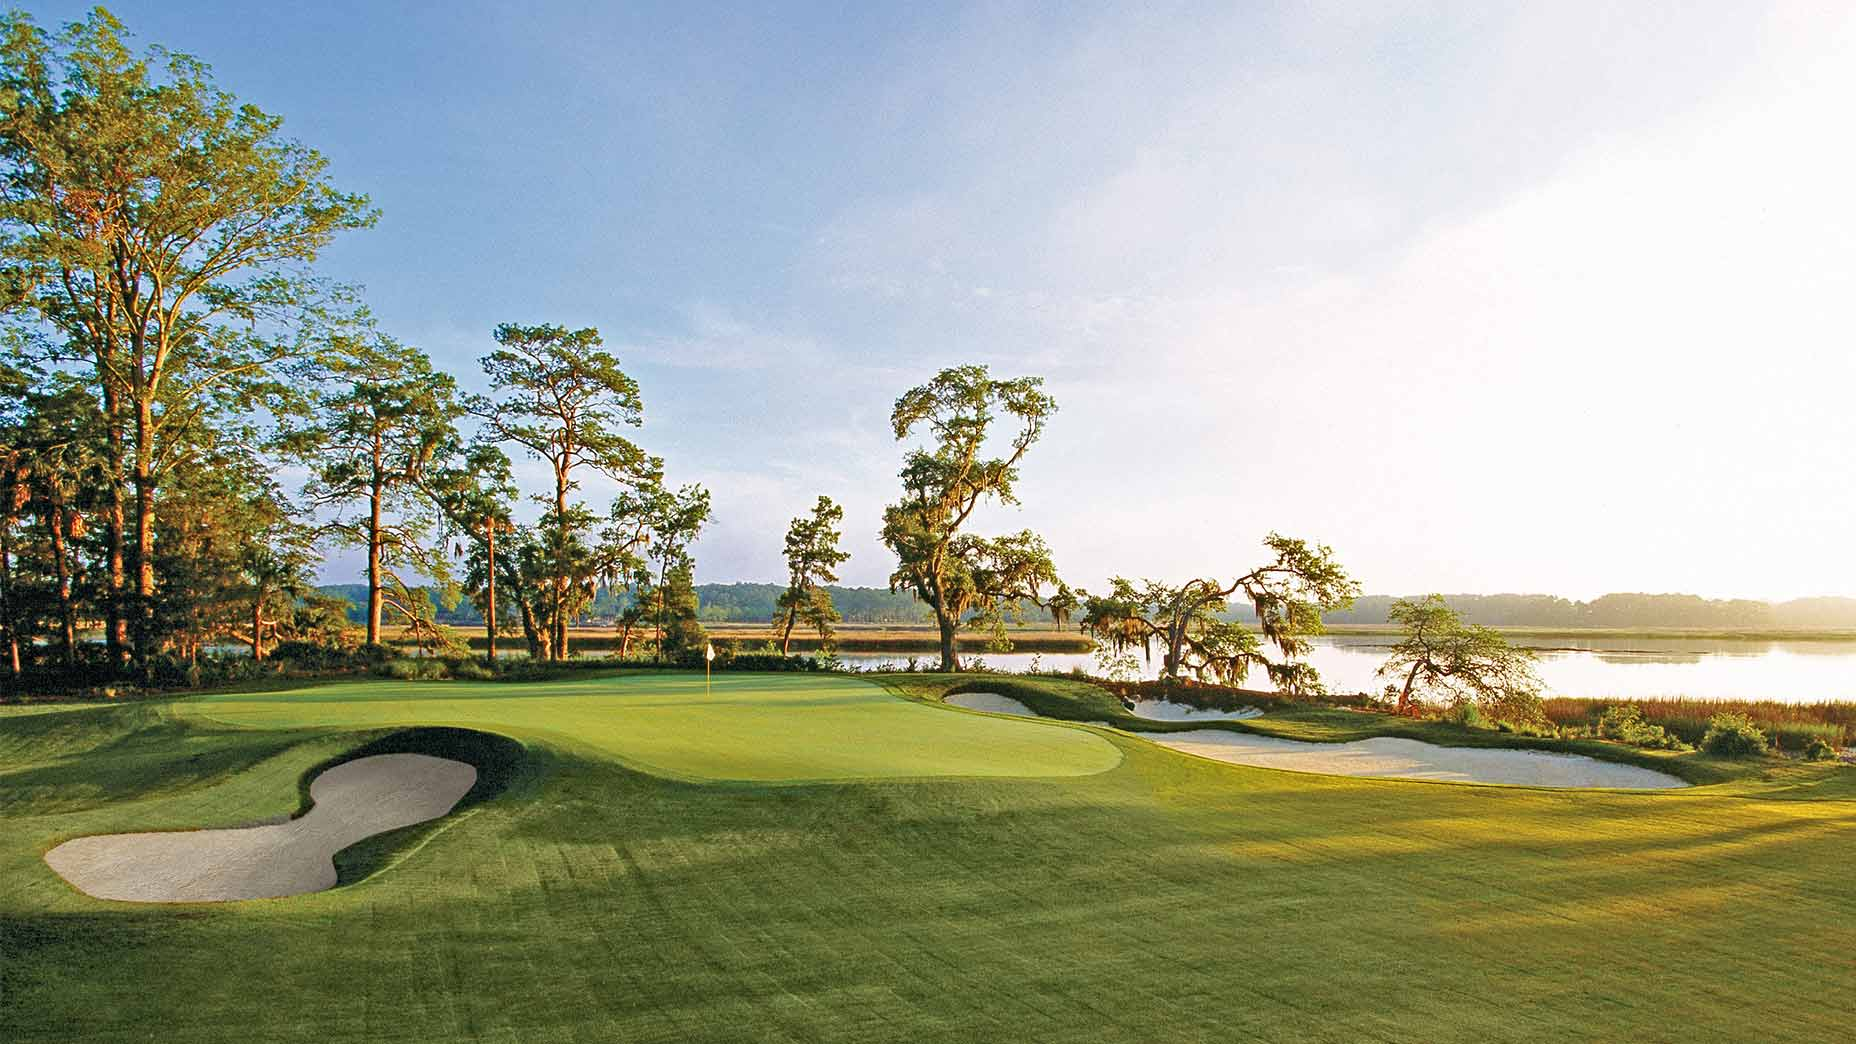 May River Golf Course in Bluffton, S.C.